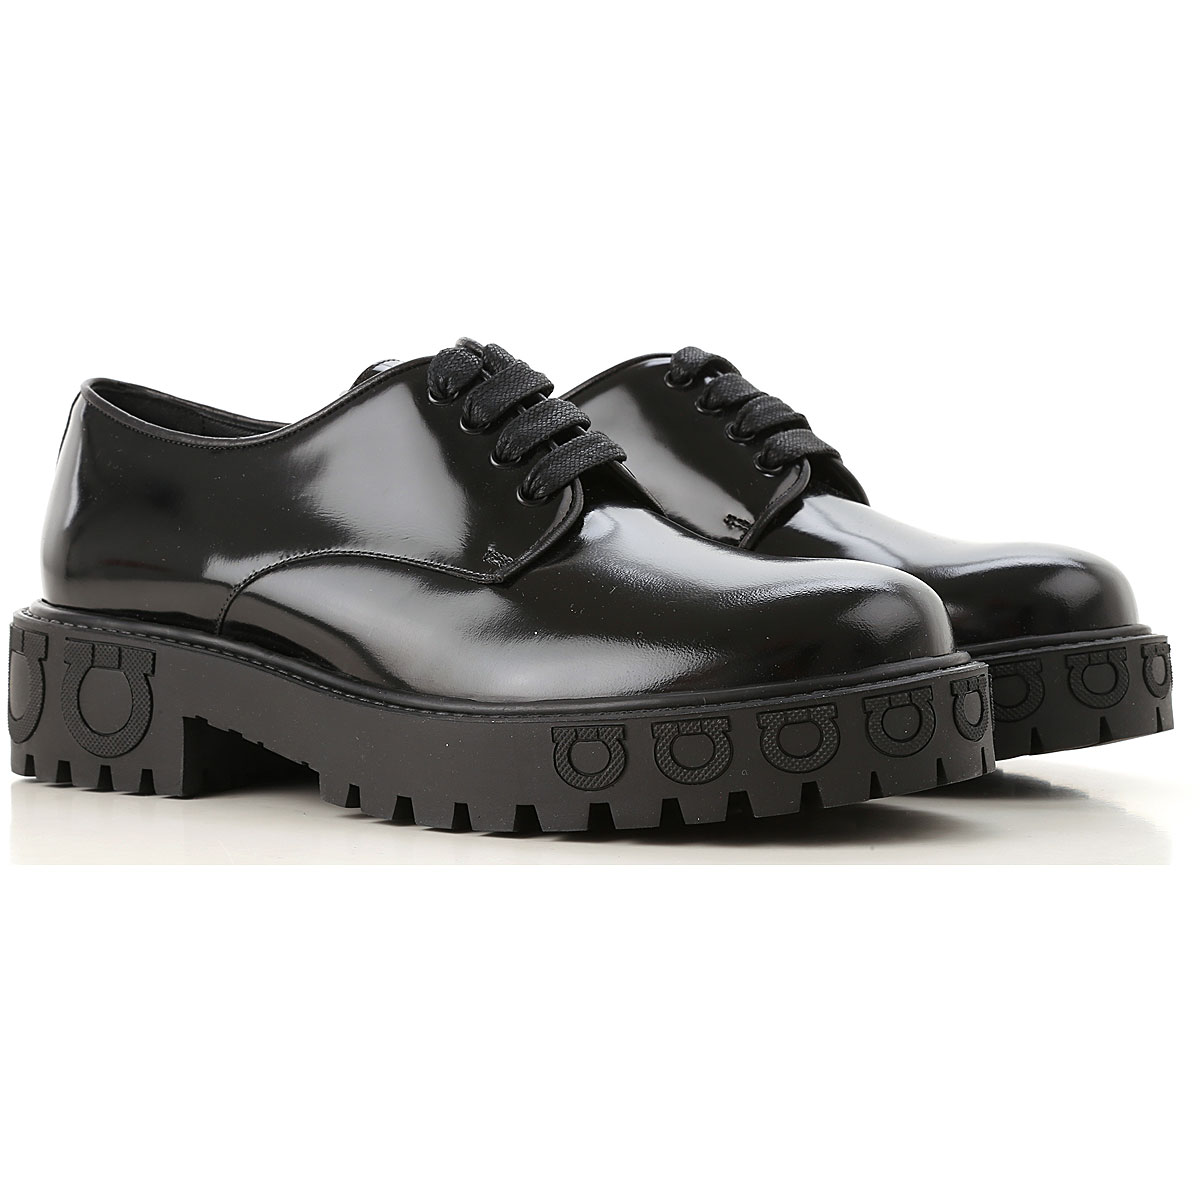 Image of Salvatore Ferragamo Lace Up Shoes for Men Oxfords, Derbies and Brogues, Black, Leather, 2017, 7 7.5 8.5 9 9.5